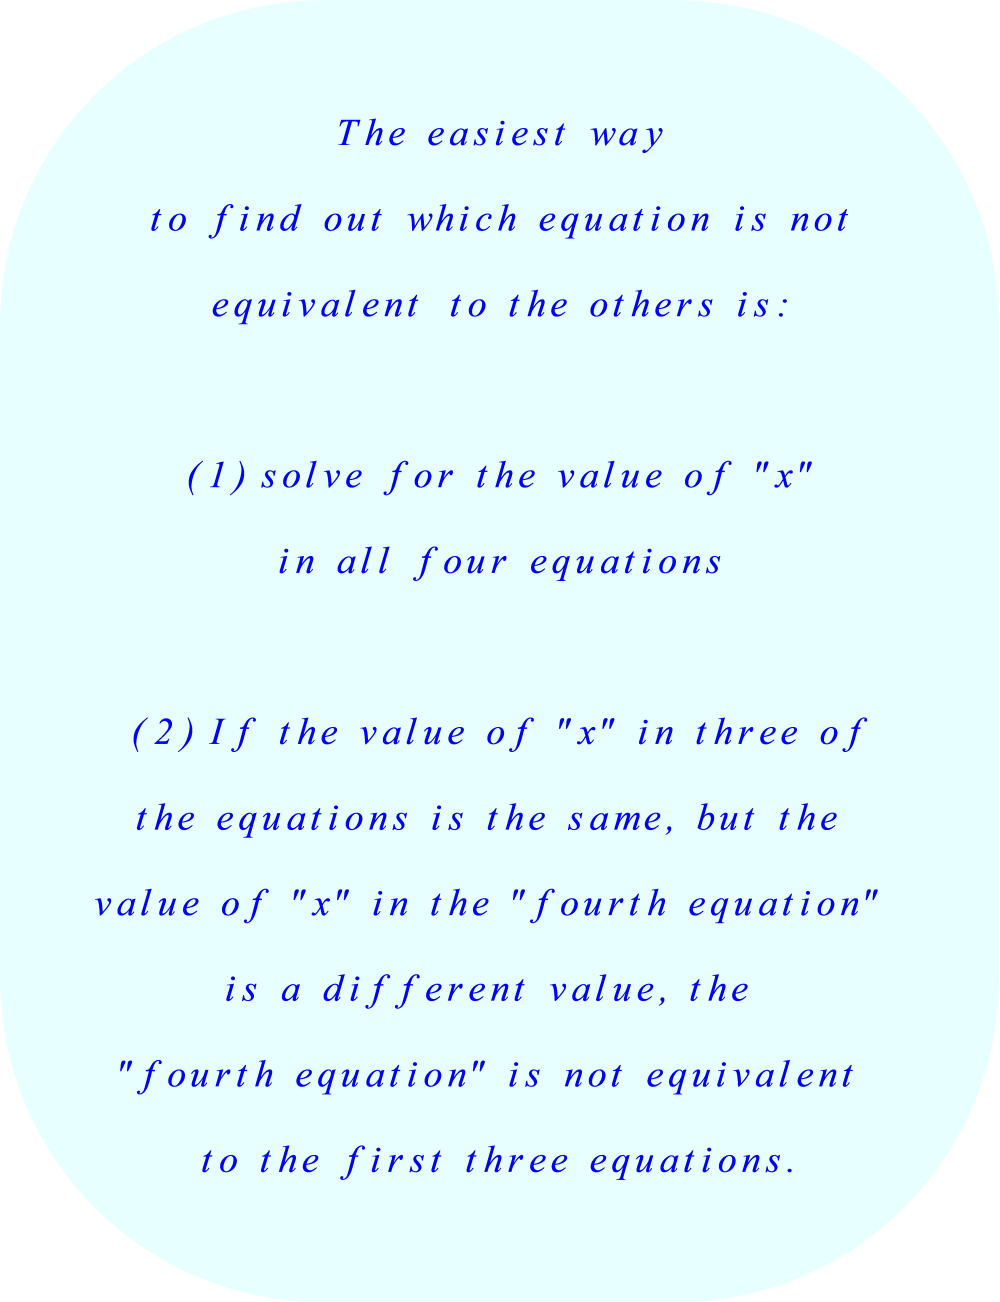 (1) solve for x in all four equations, and then (2) compare the values  to find out which equation is not equivalent to the others